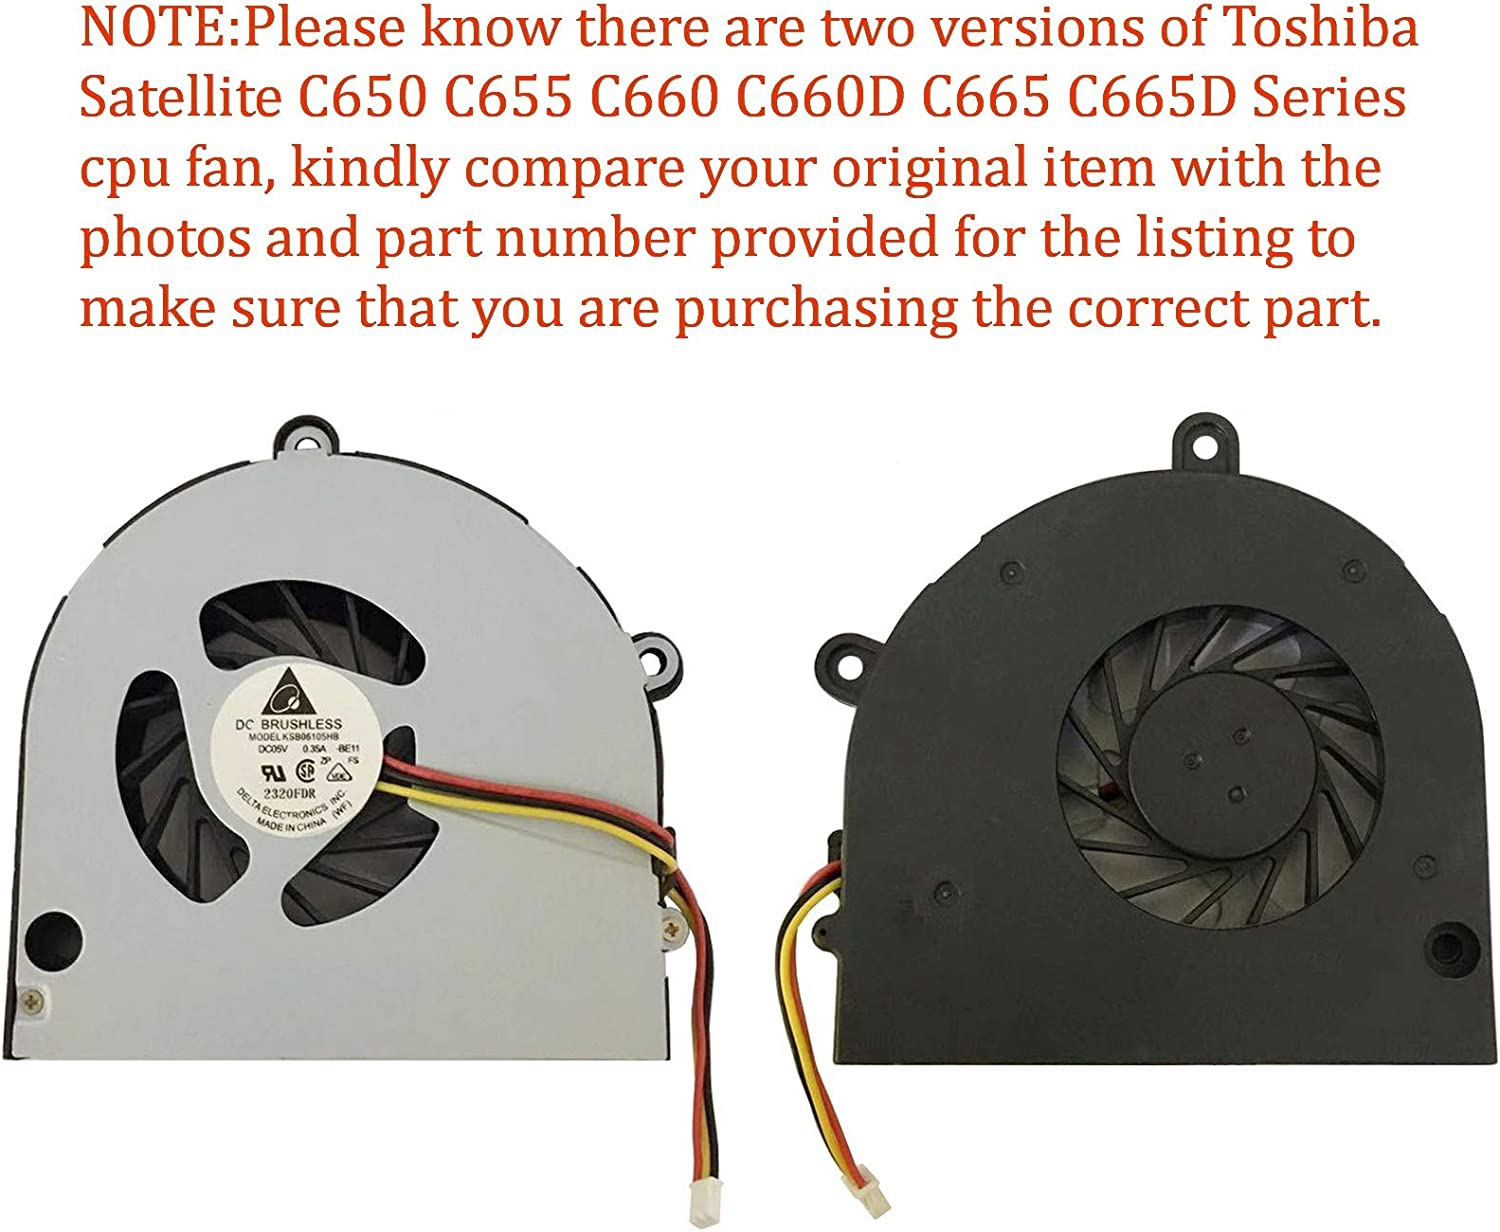 Todiys CPU Cooling Fan for Toshiba Satellite C650 C655 C660 C660D C665 C665D Series C650-101 C650-BT4N12 C655-S5049 C655-S9510D C660-02L C660-2GM C660-23N C665-S5123 C665-S5512 DC280008DN0